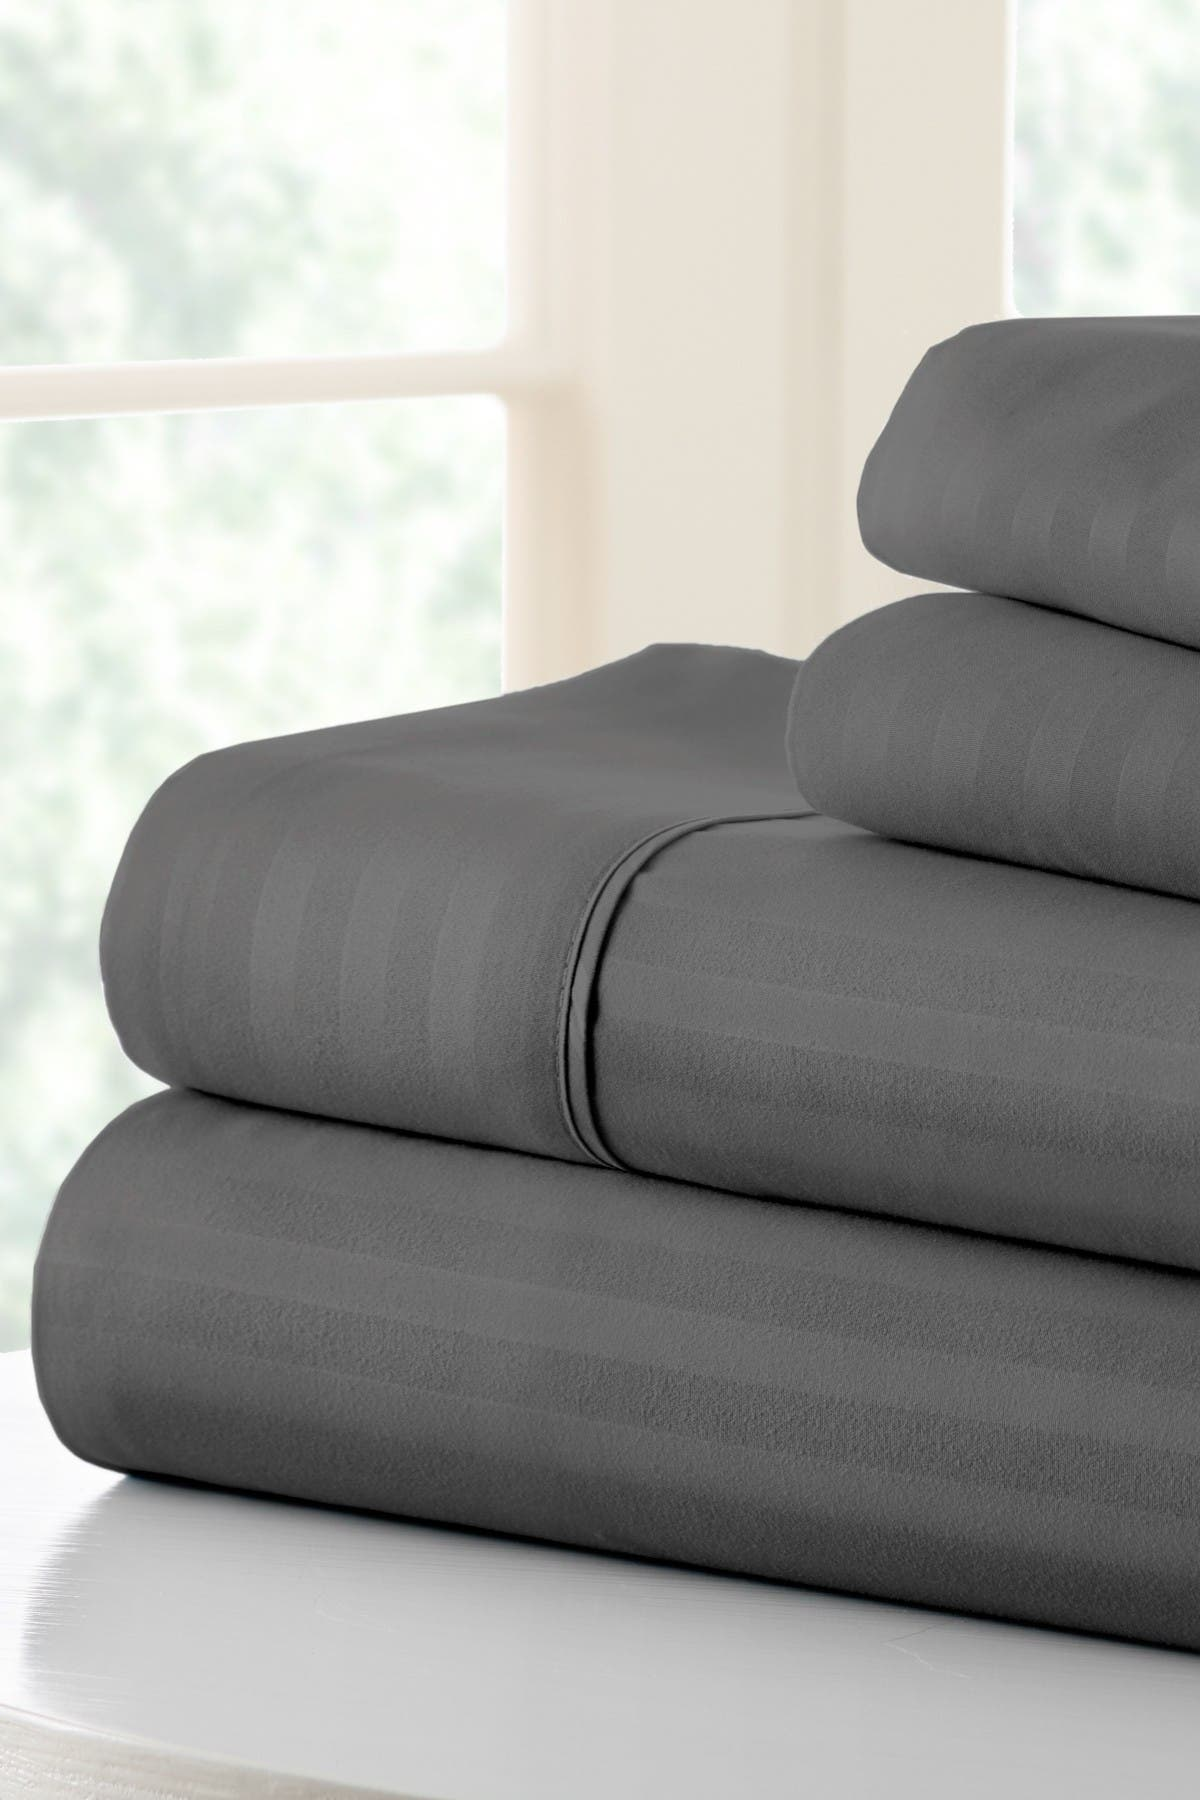 Image of IENJOY HOME Hotel Collection Premium Ultra Soft 4-Piece Striped King Bed Sheet Set - Gray